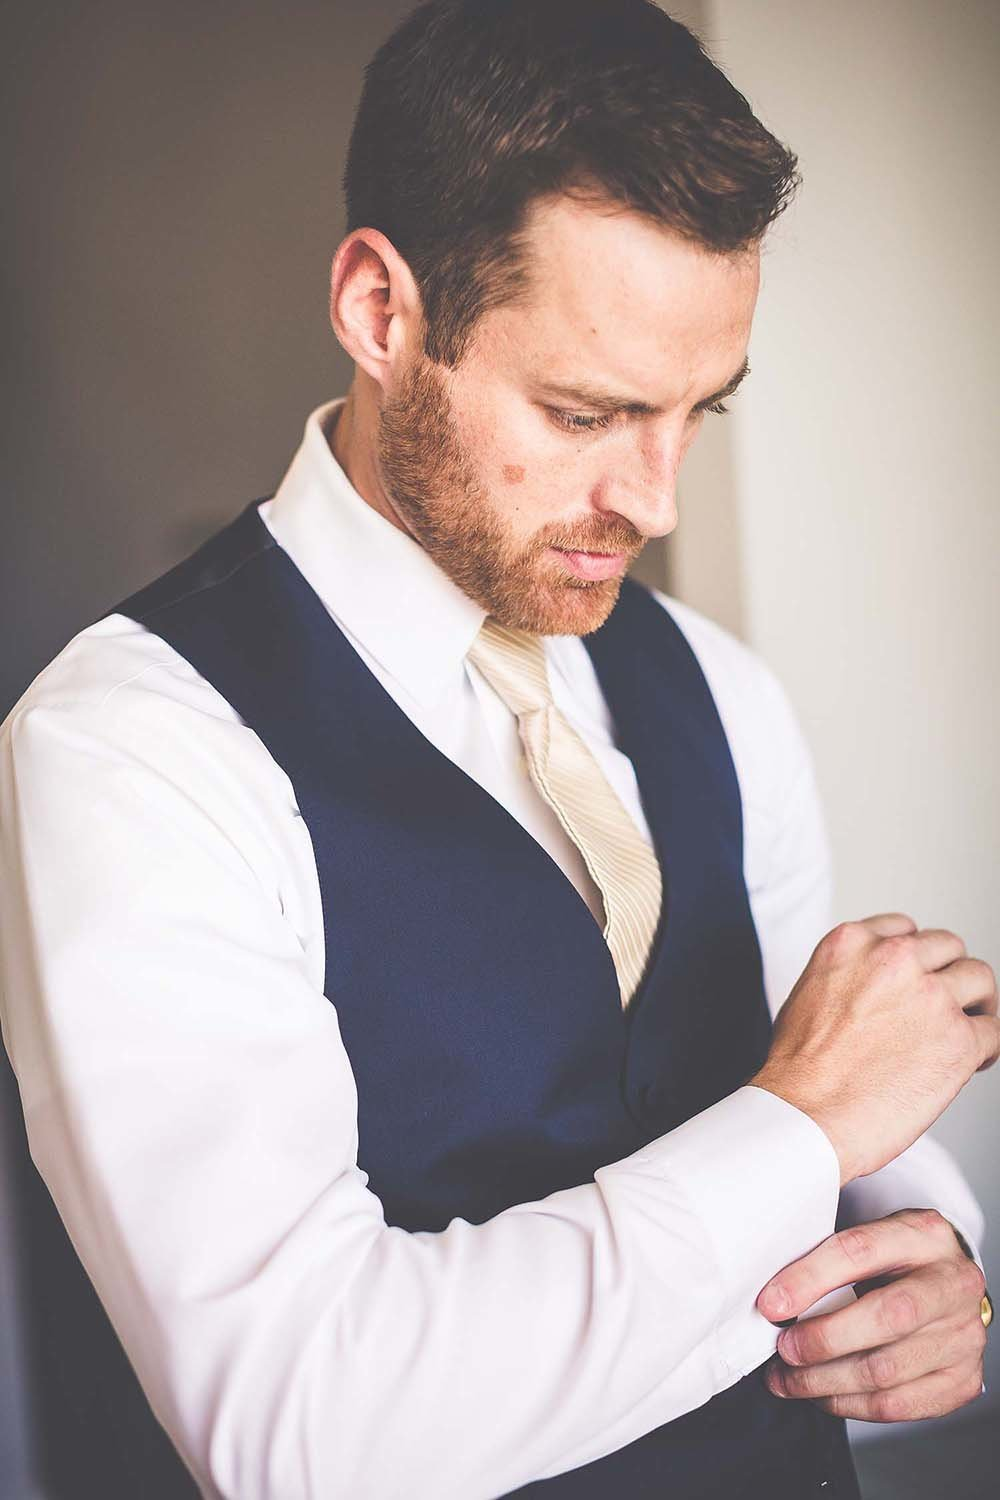 groom-getting-ready-photo-inspiration-breaking-tradition-castle-gate-wedding-otttis-st-augustine